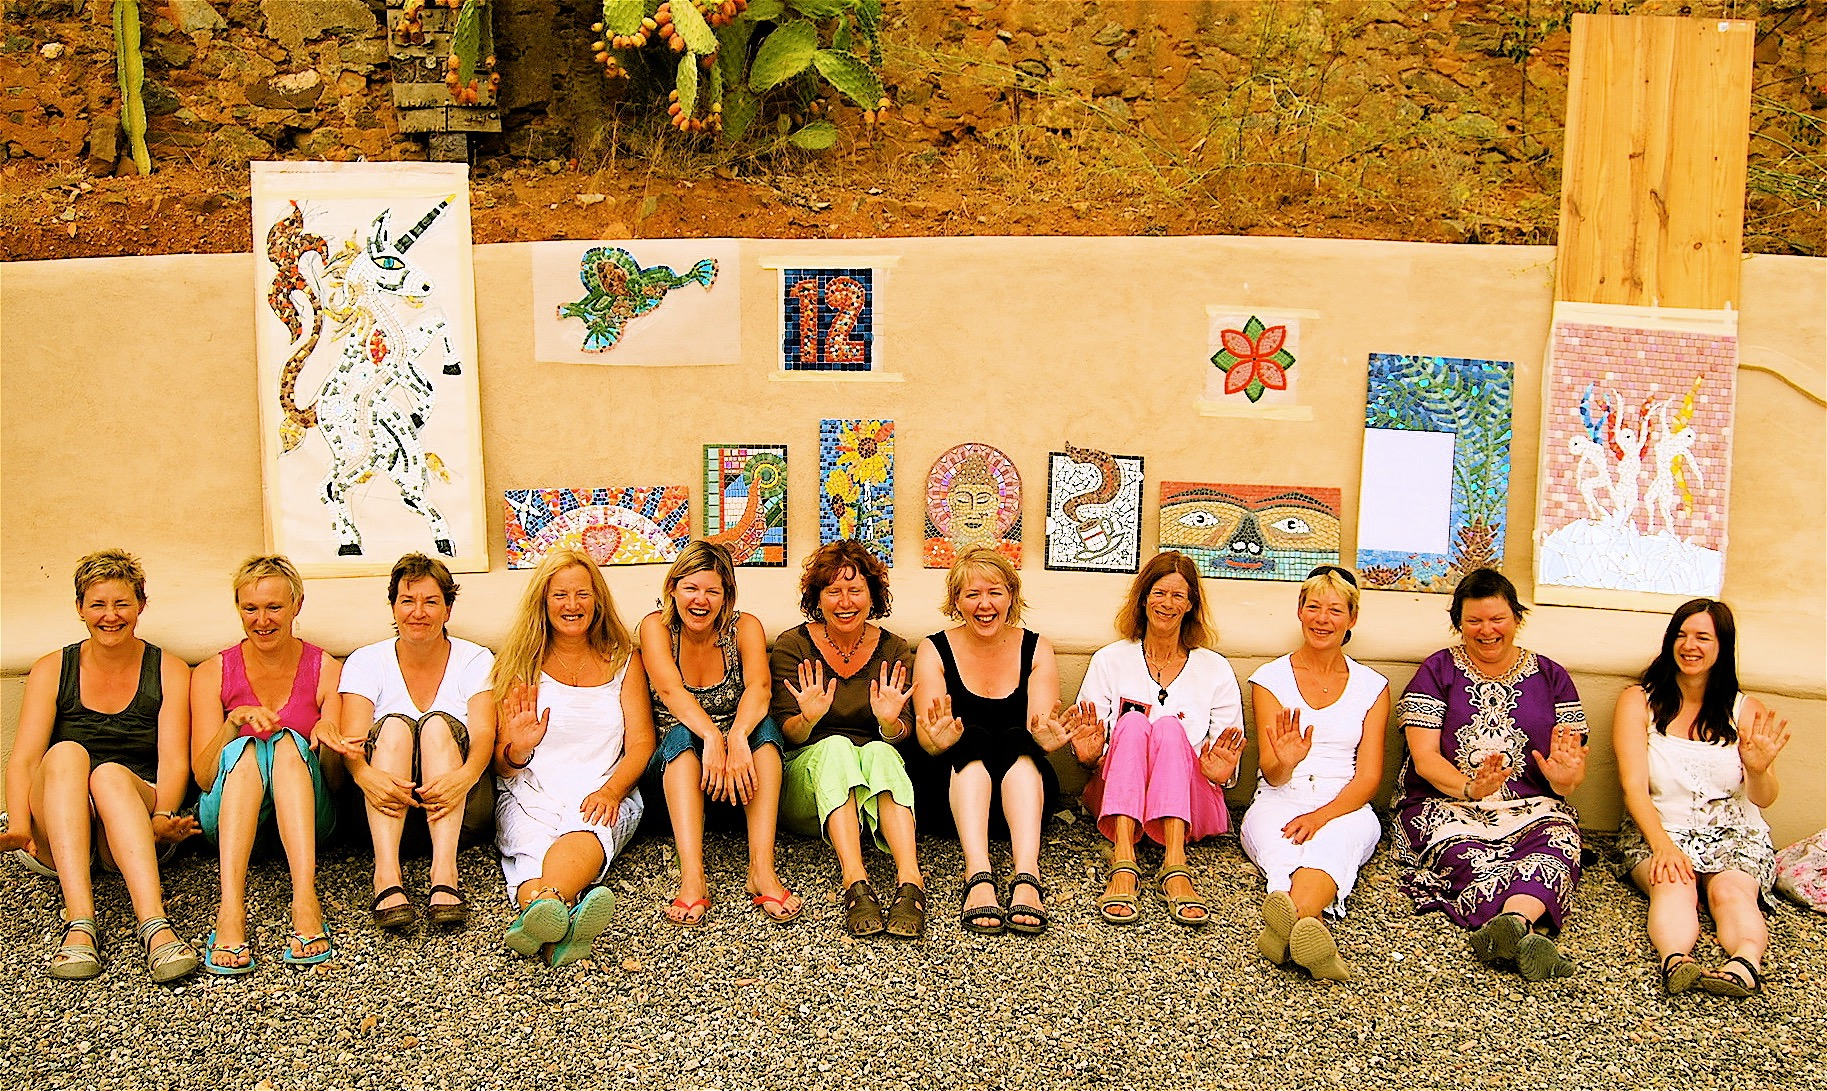 Valle de Vida, Mosaic and Yoga 2010